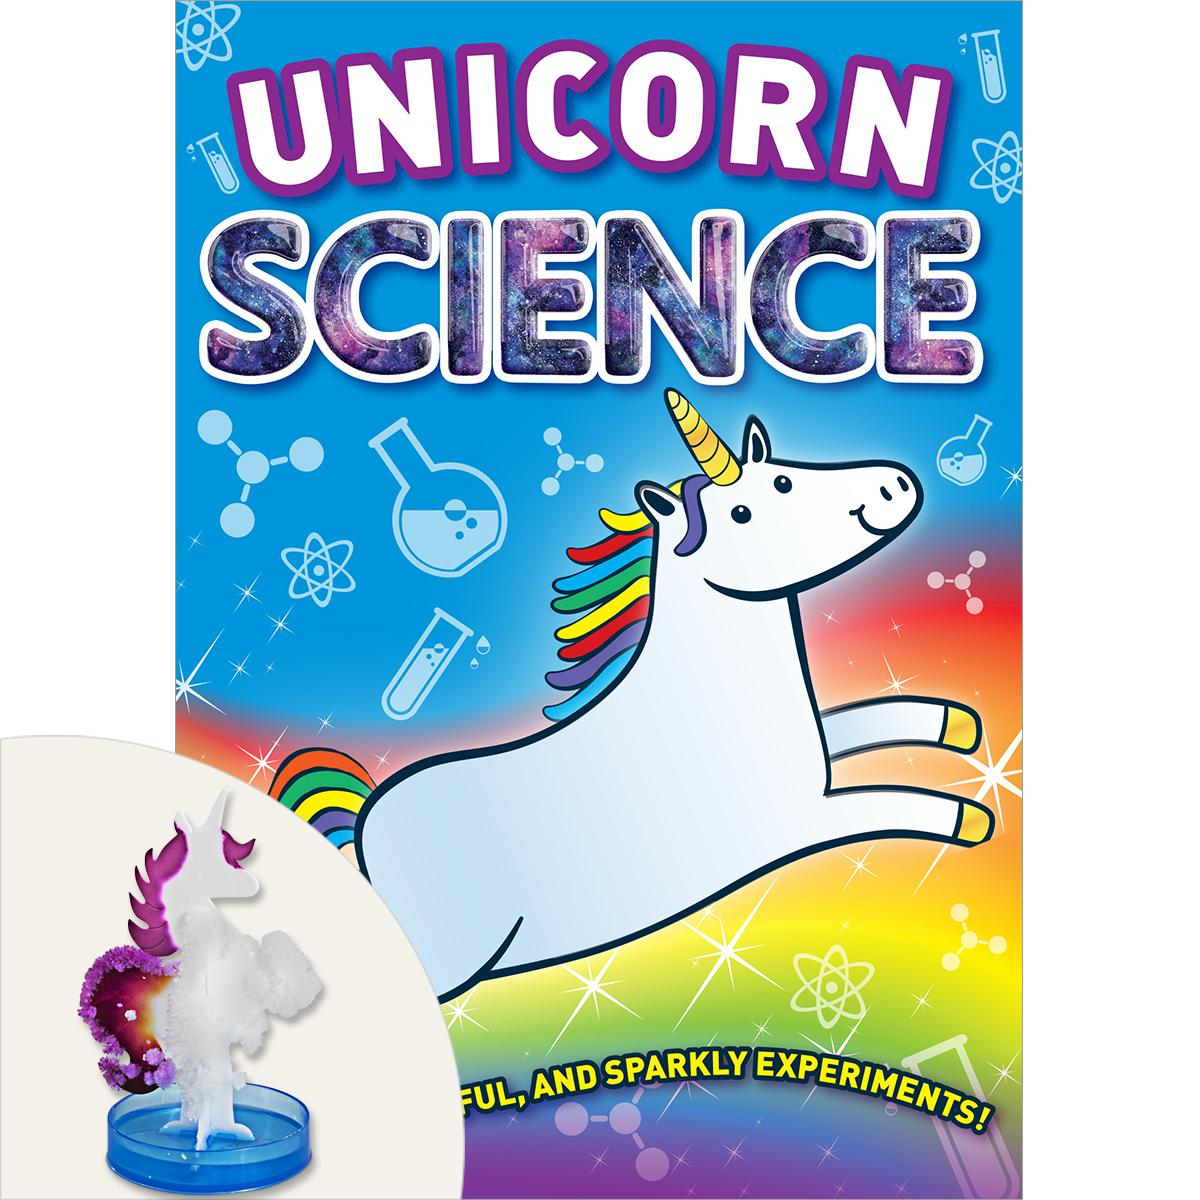 Unicorn Science